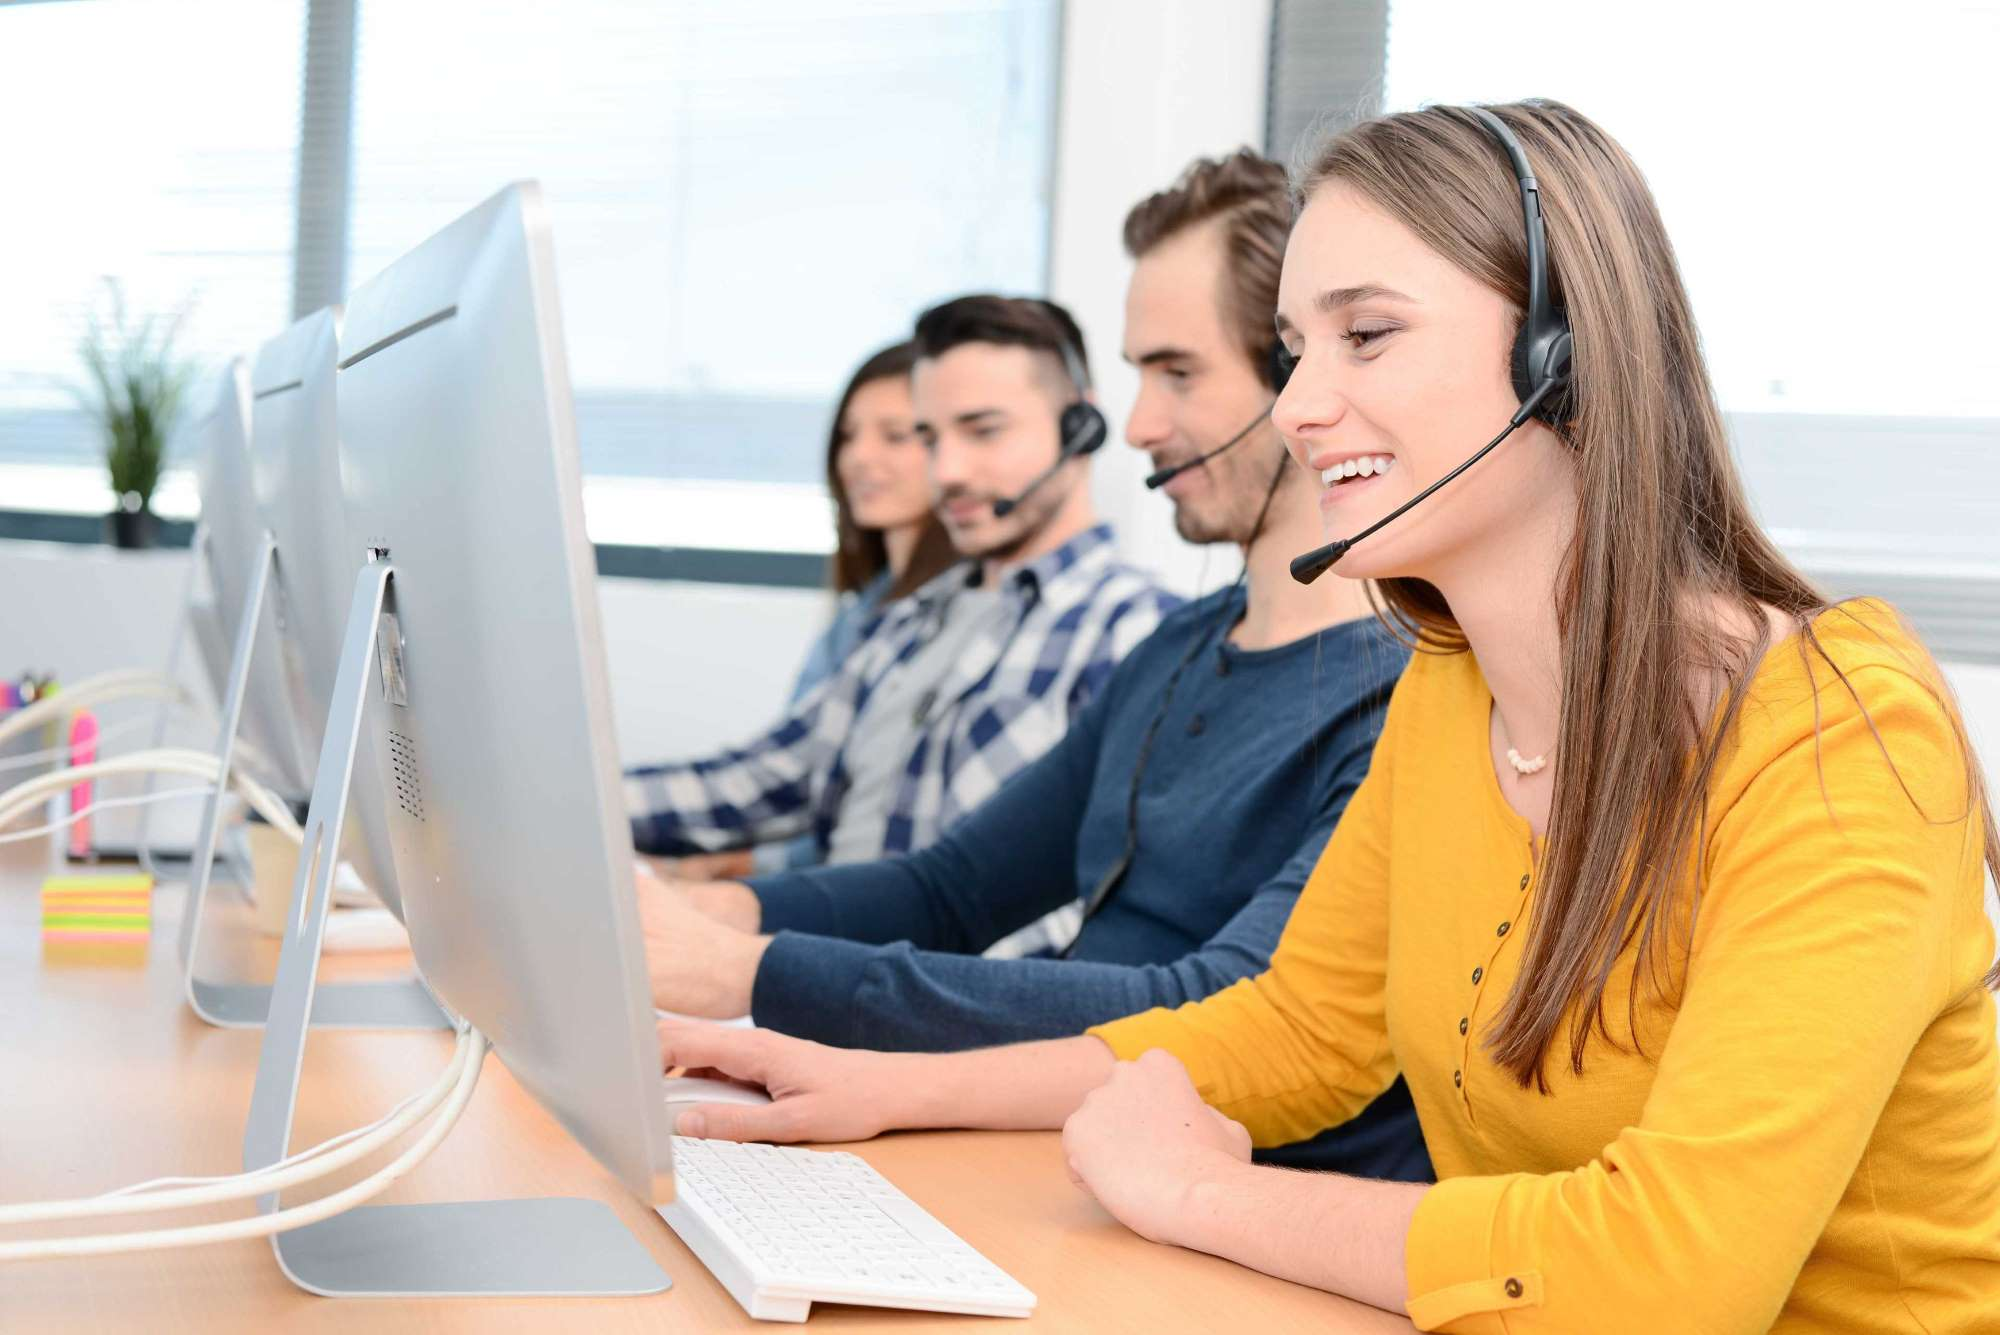 ContactCenter_group_new10232019a